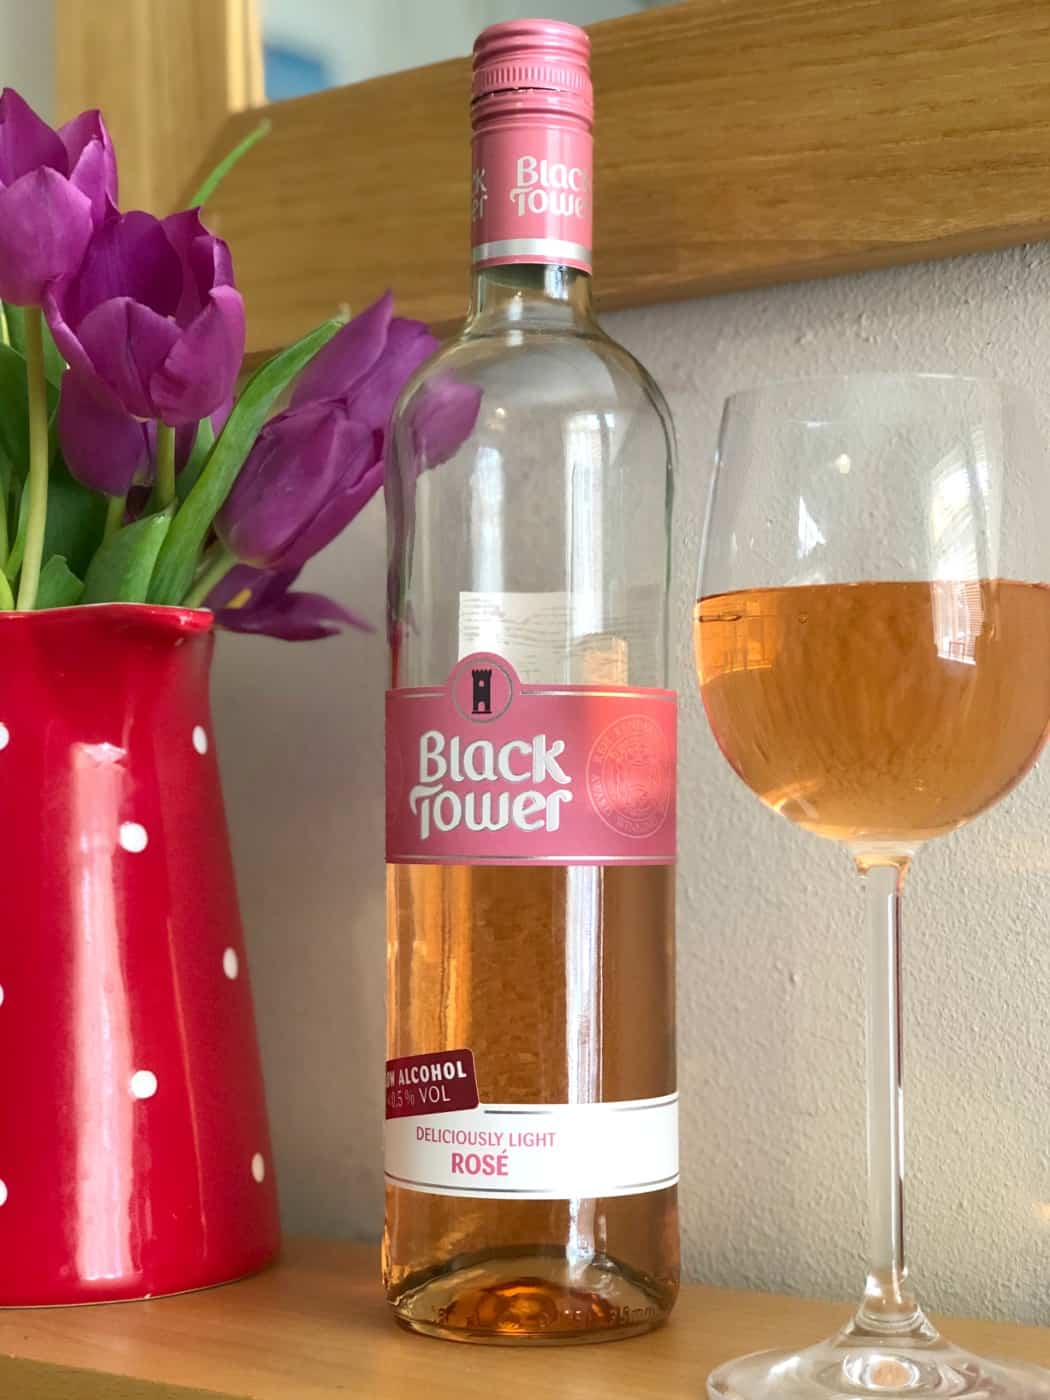 Black Tower Deliciously Light Range Wine Sparkling